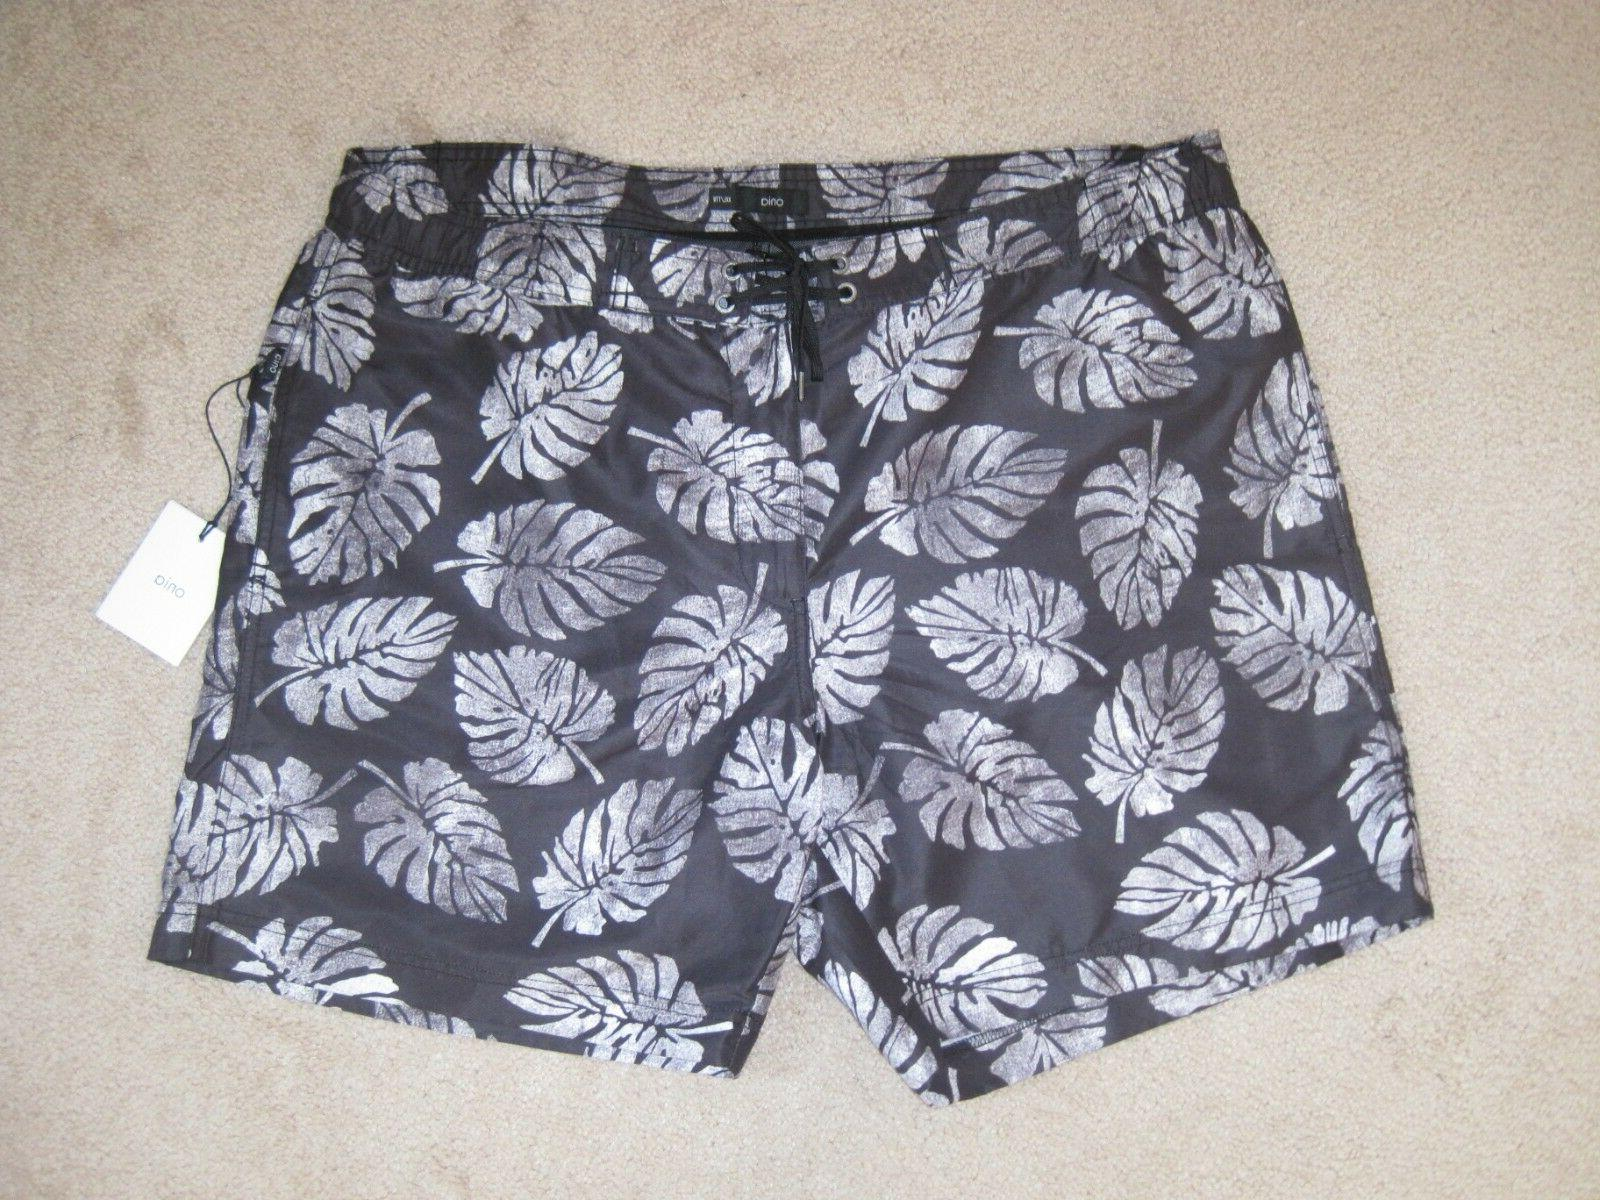 NWT 7 Inch Board Shorts, Palm Stamps, XXL